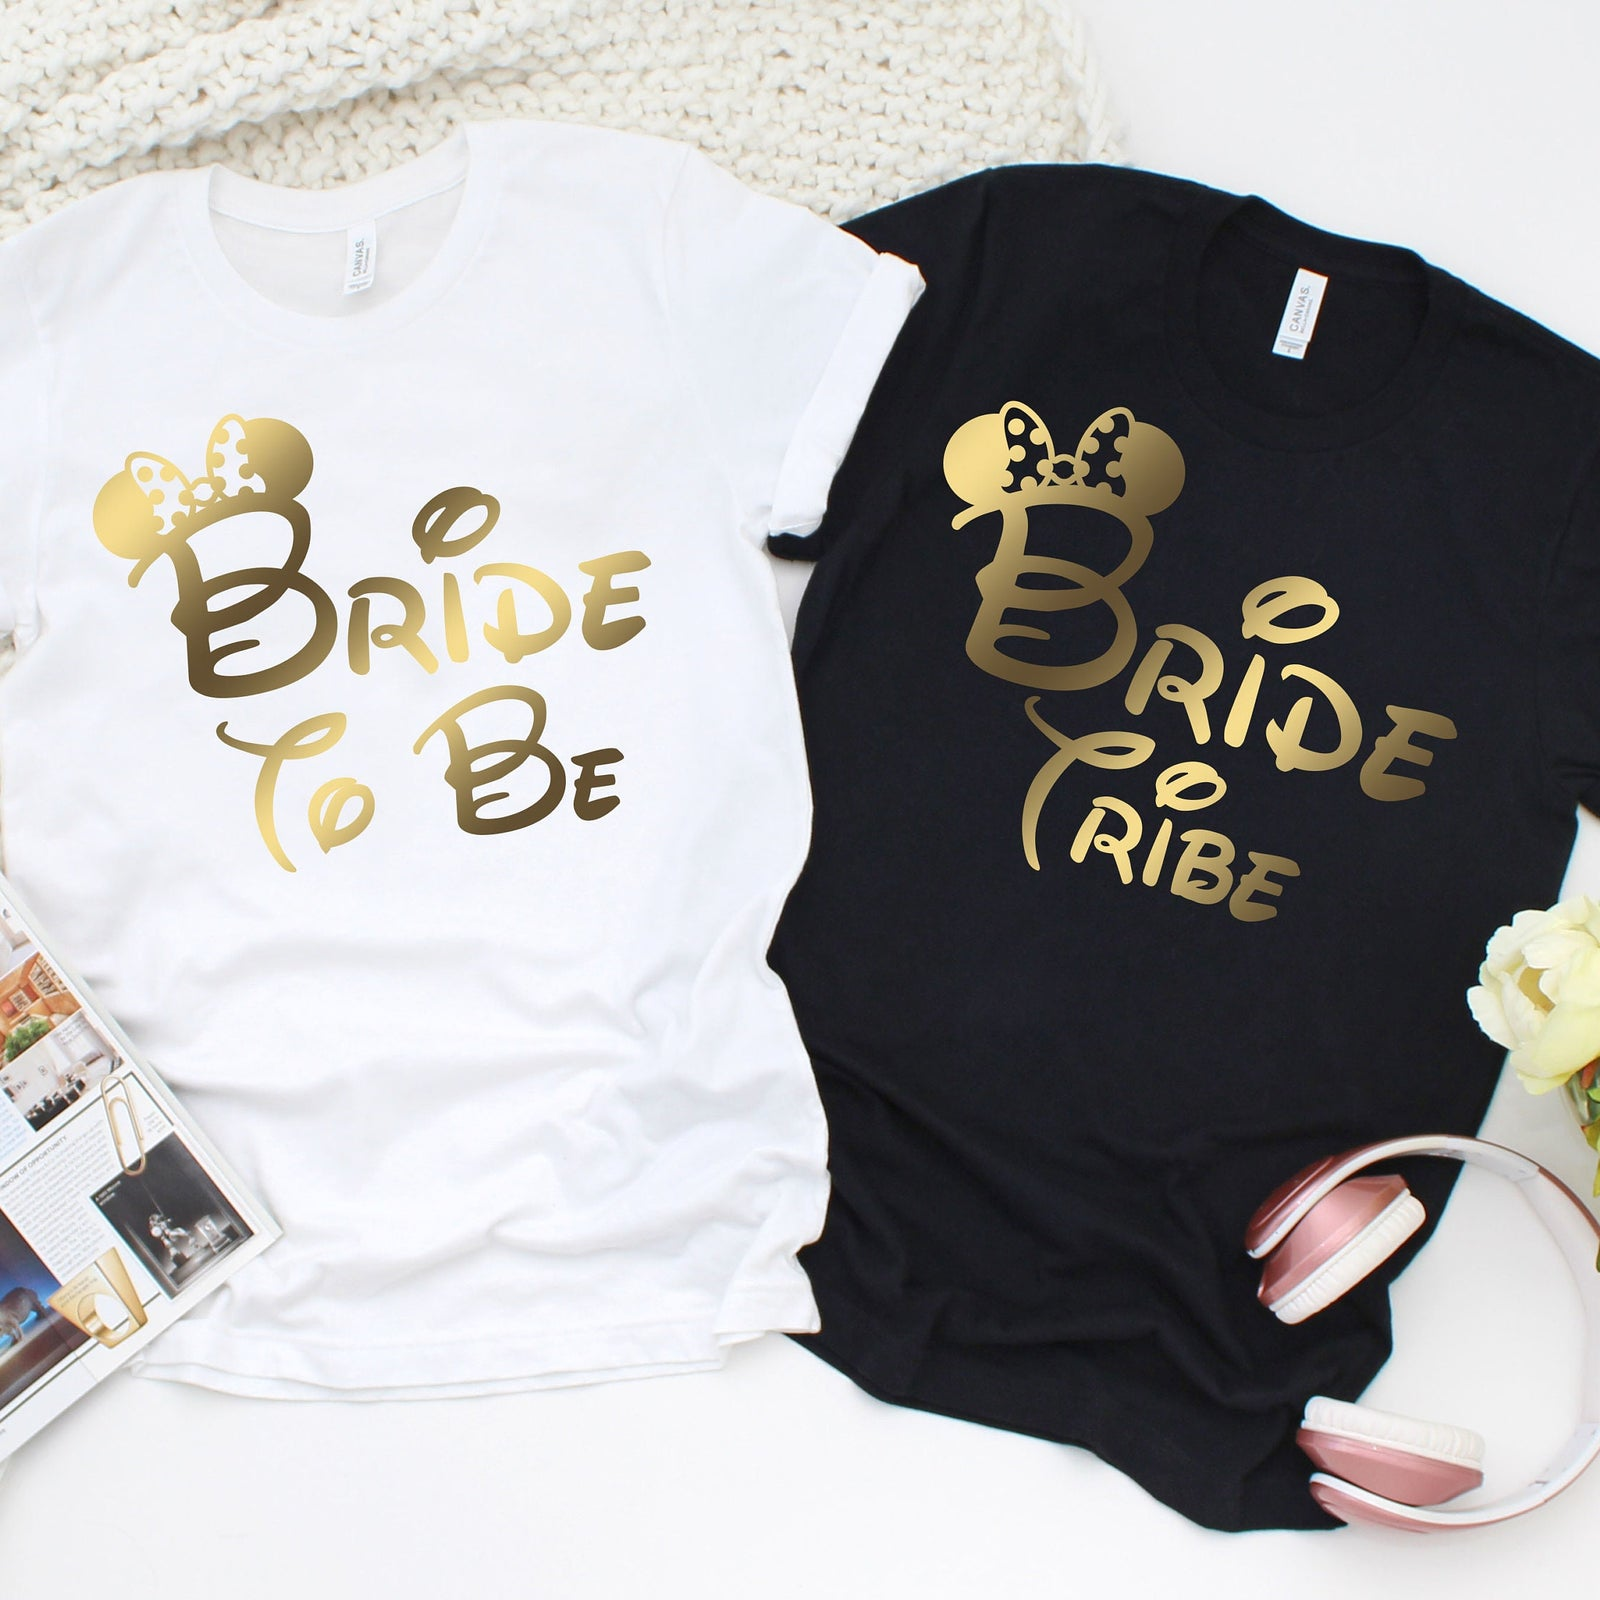 Disney Themed Bride To Be Shirt - Bride Tribe Shirts - Bachelorette Party  T Shirts - Disney Bride Shirt